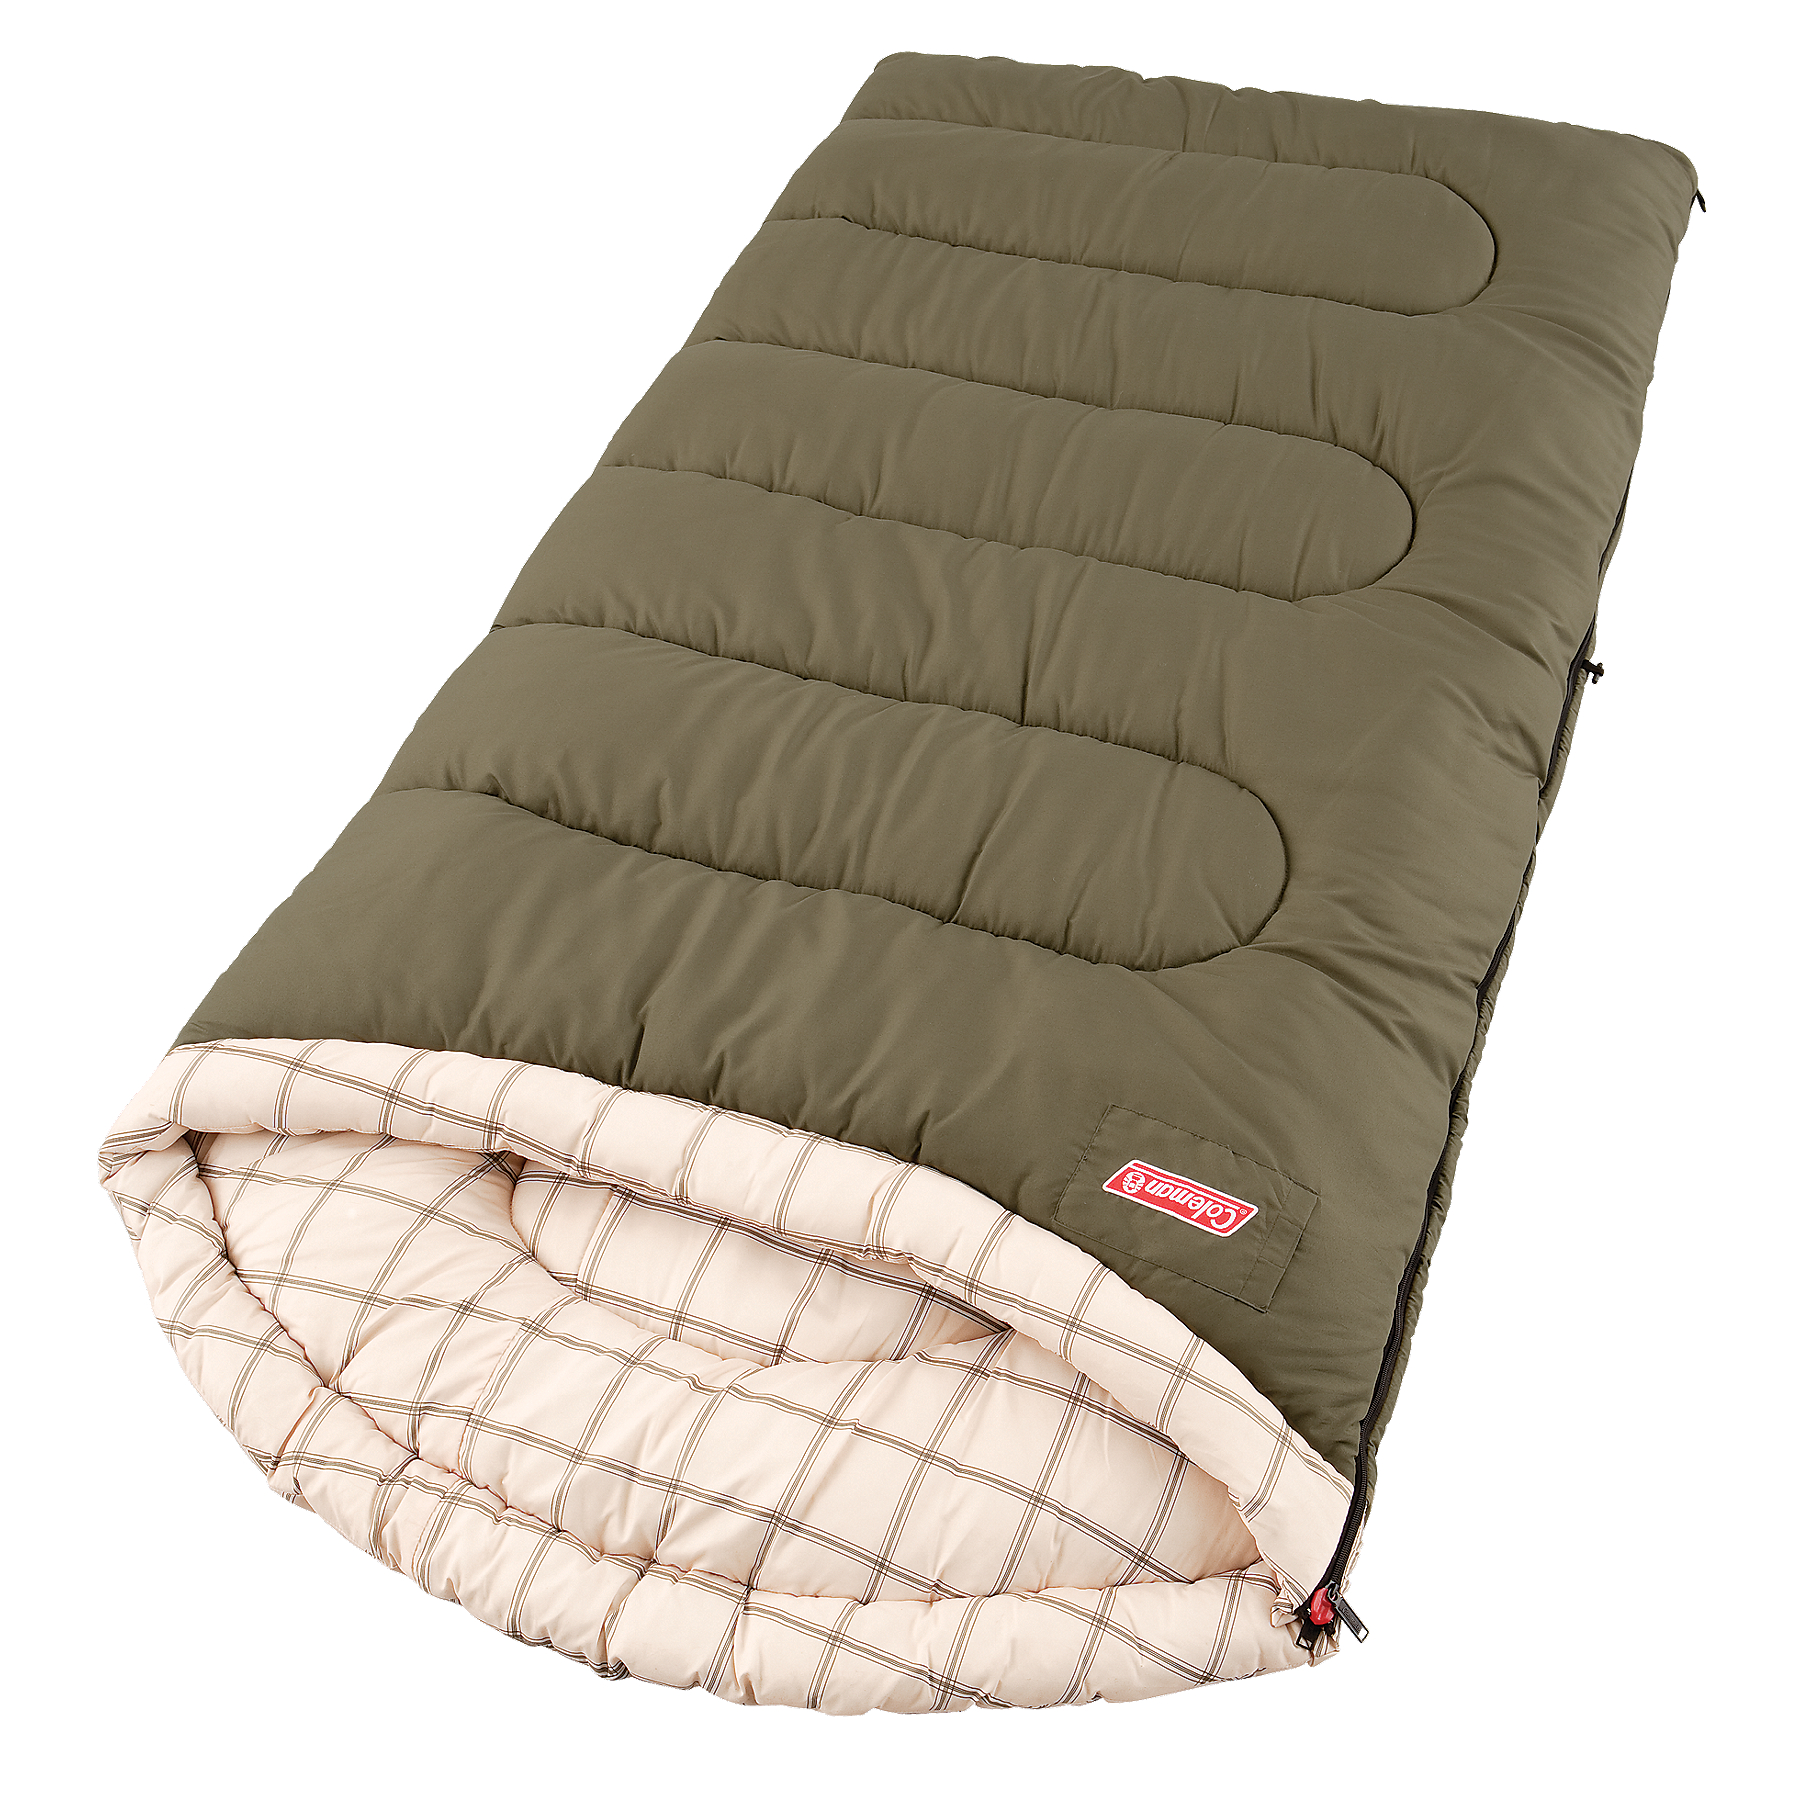 Camping on a Budget - Juneau Sleeping Bag